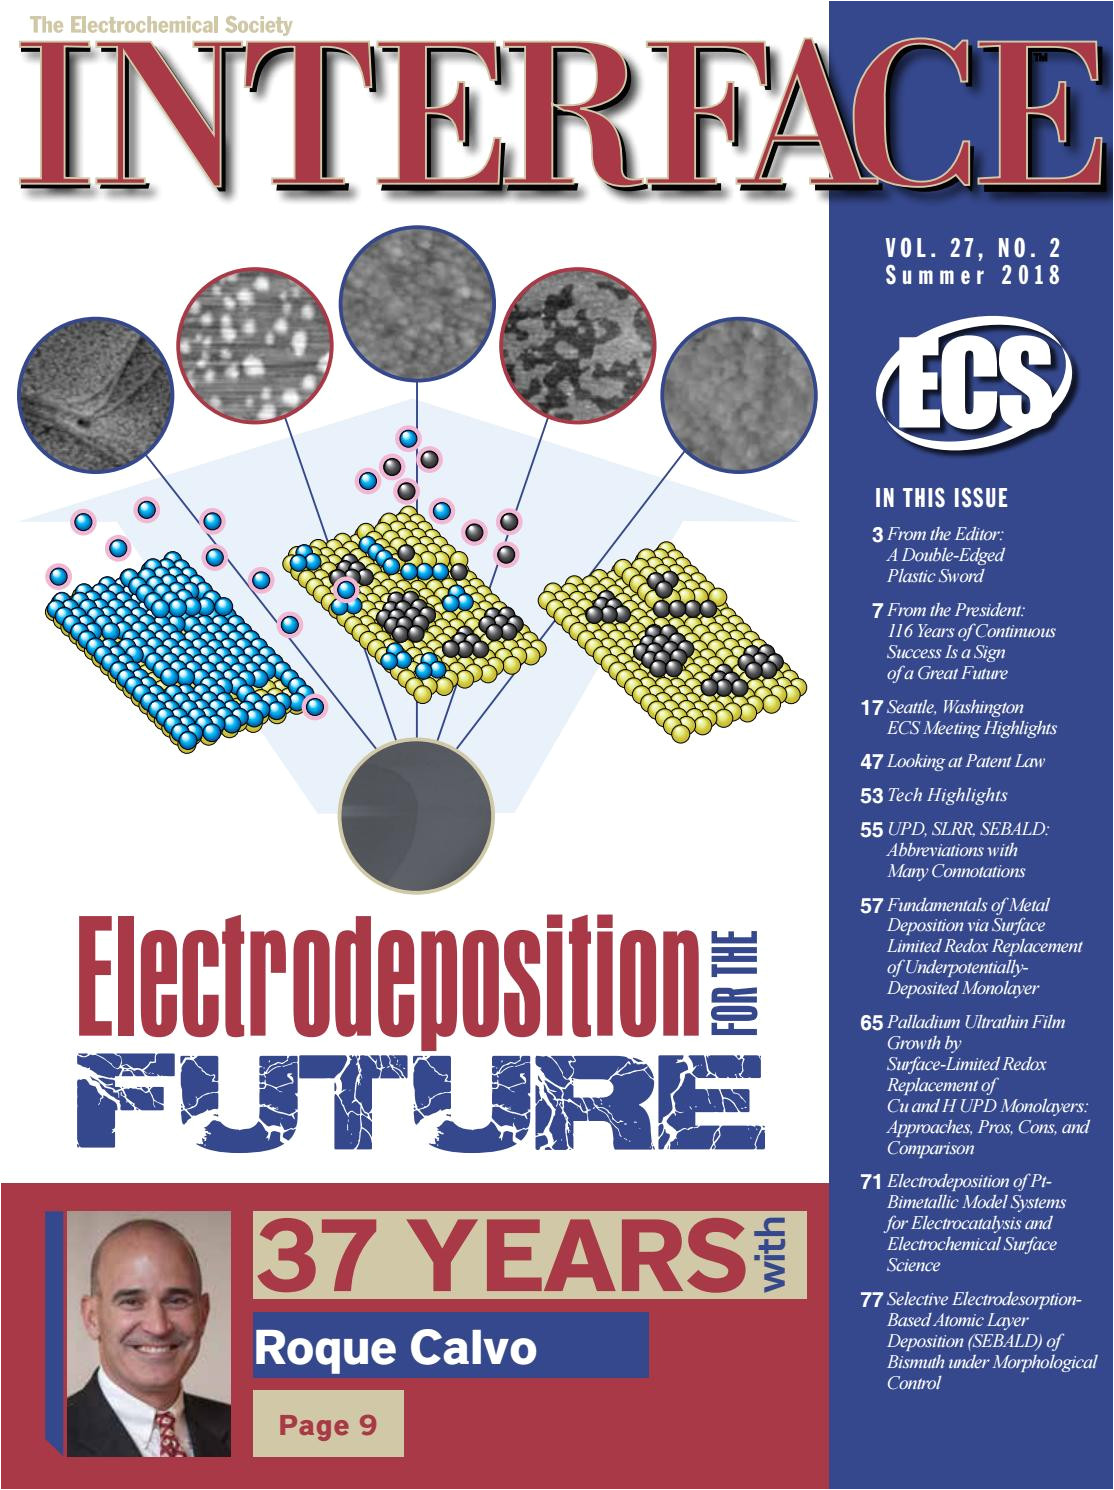 interface vol 27 no 2 summer 2018 by the electrochemical society issuu